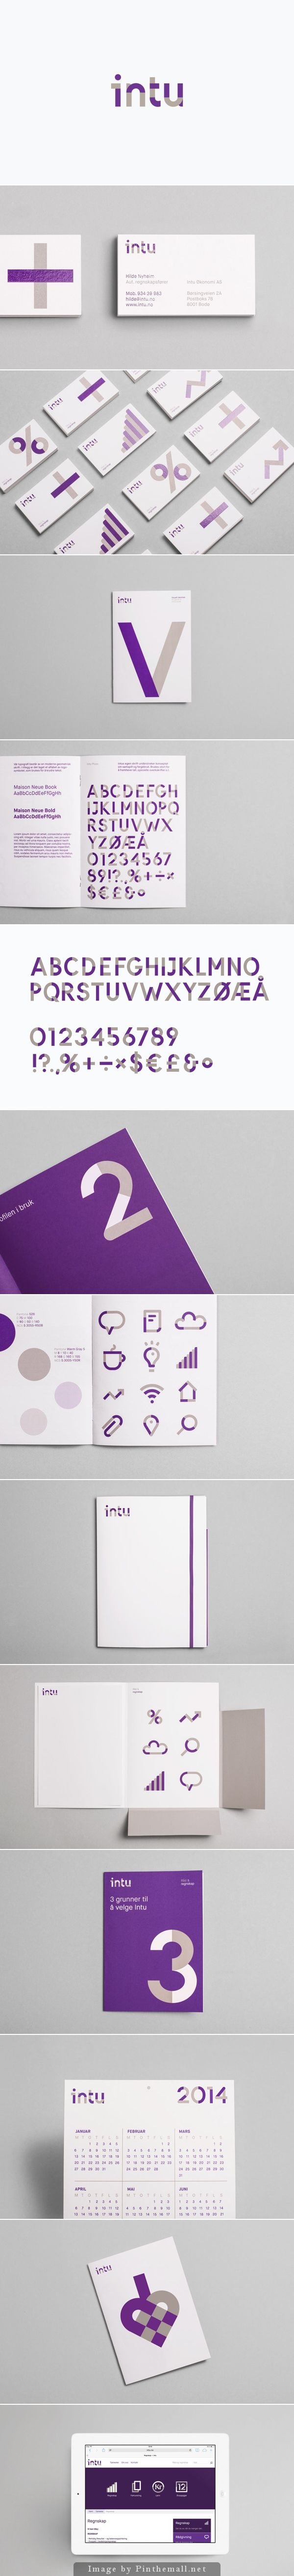 Intu by Heydays Design Agency - created via http://pinthemall.net